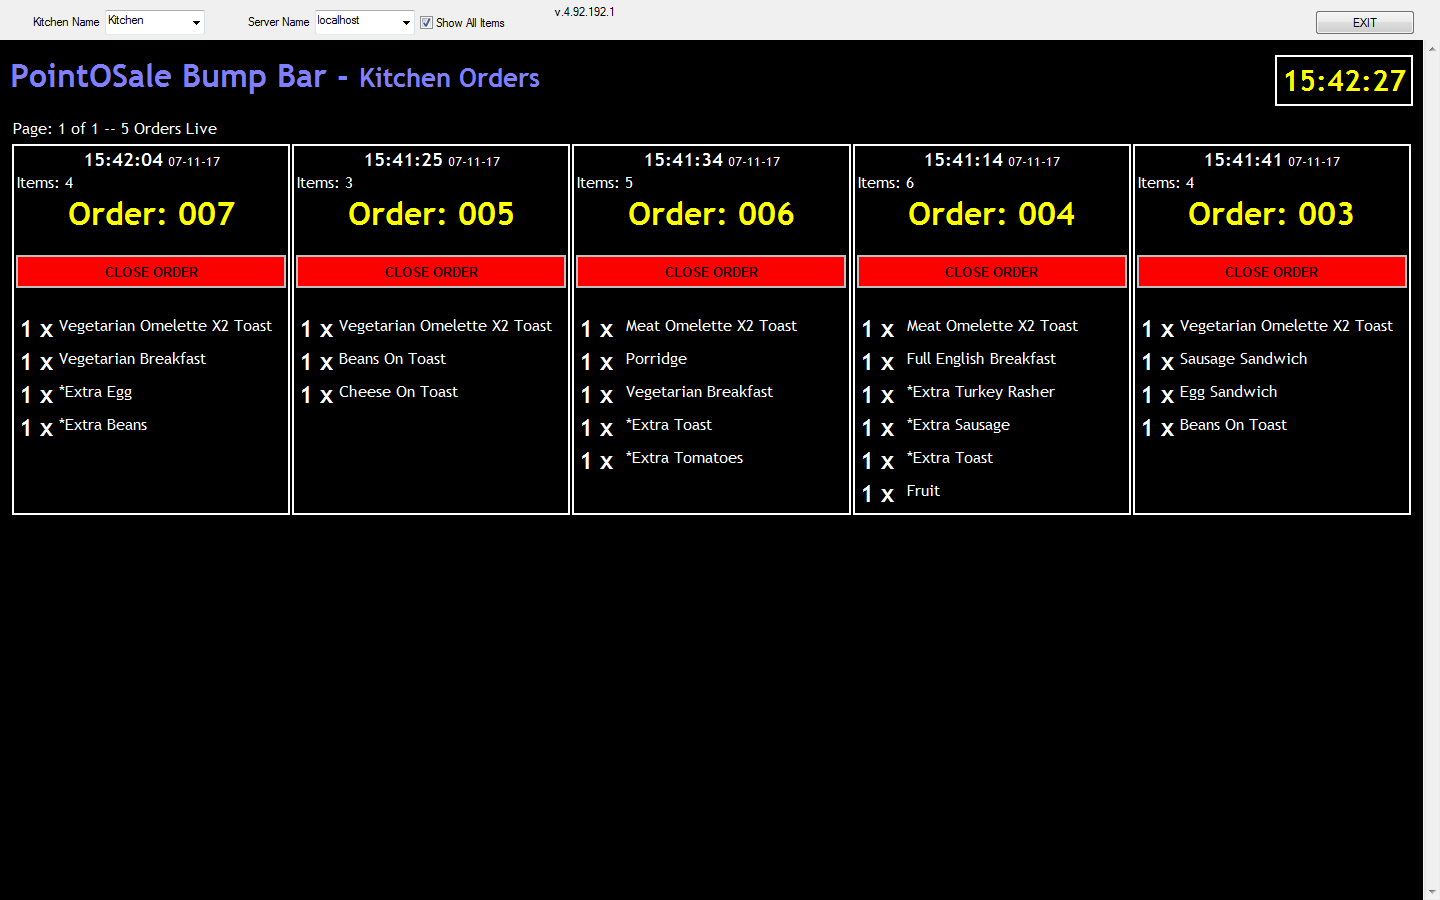 Kitchen Bump bar software, View kitchen or other orders on a tou